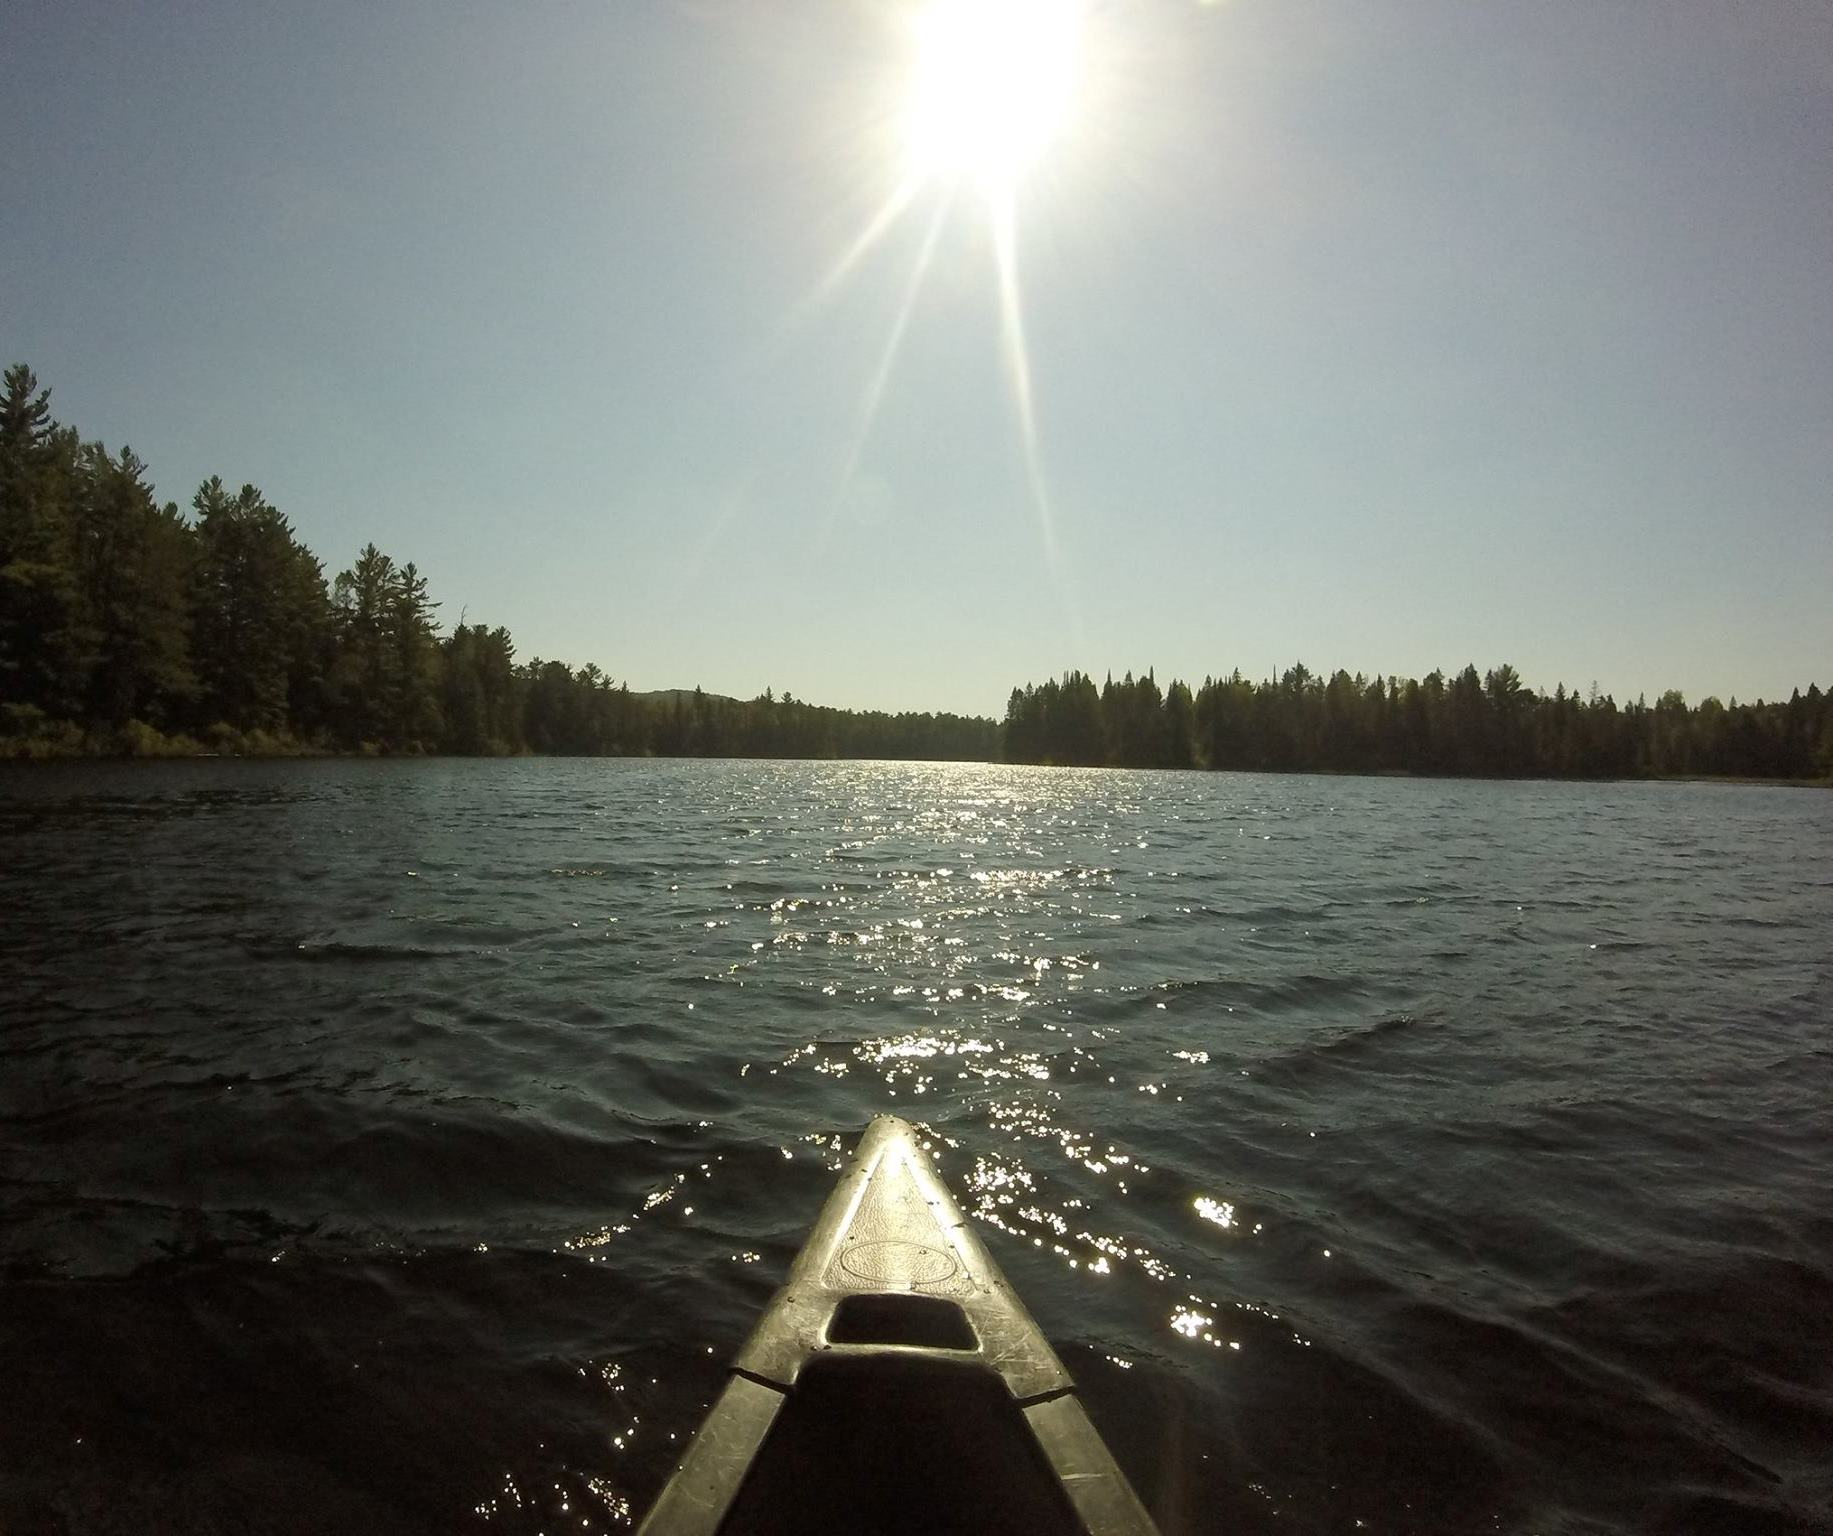 Taken from David's canoe on a beautiful lake in Algonquin Provincial Park